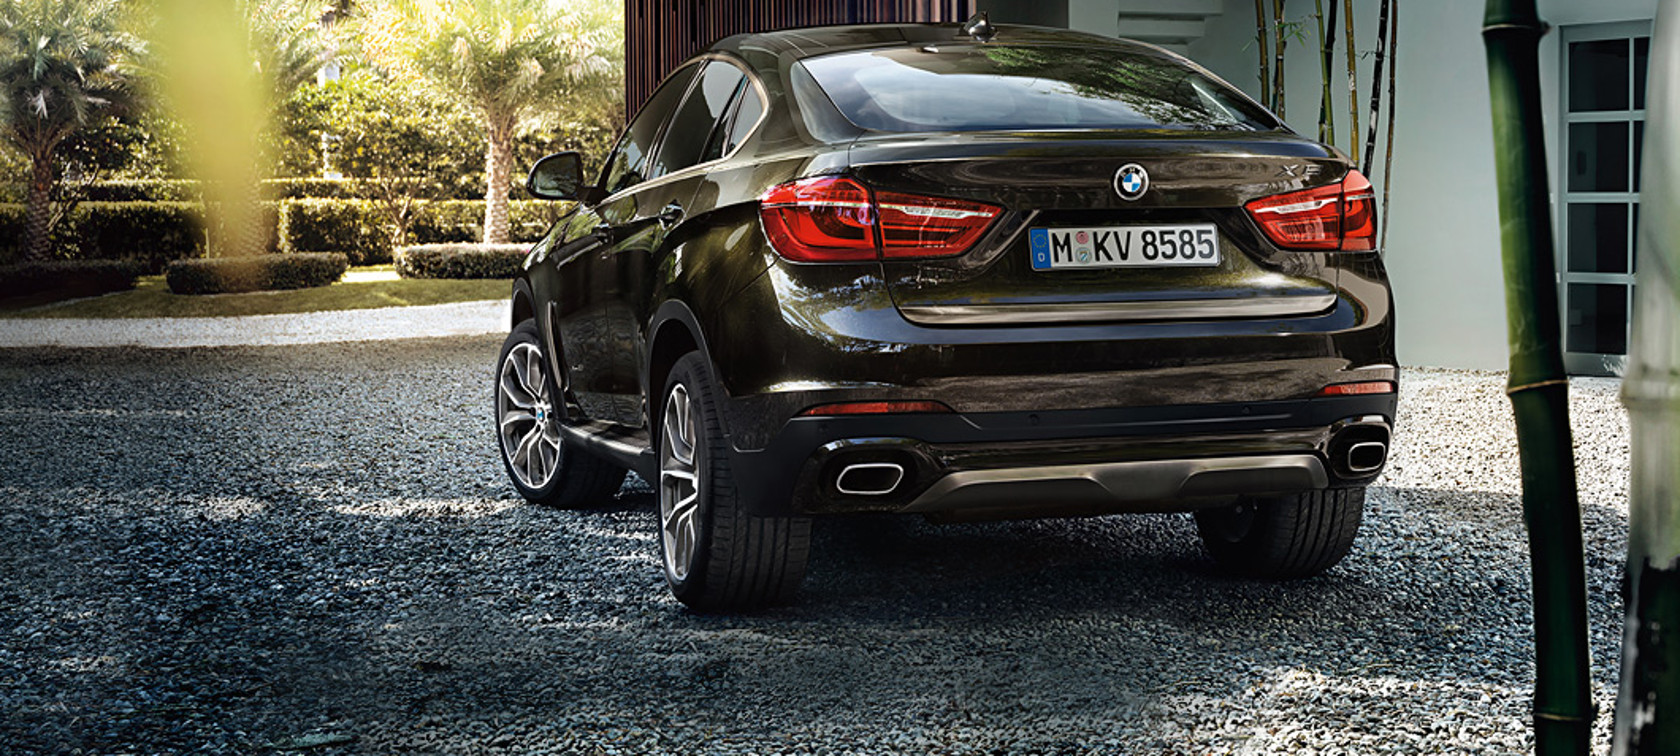 The design of the BMW X6